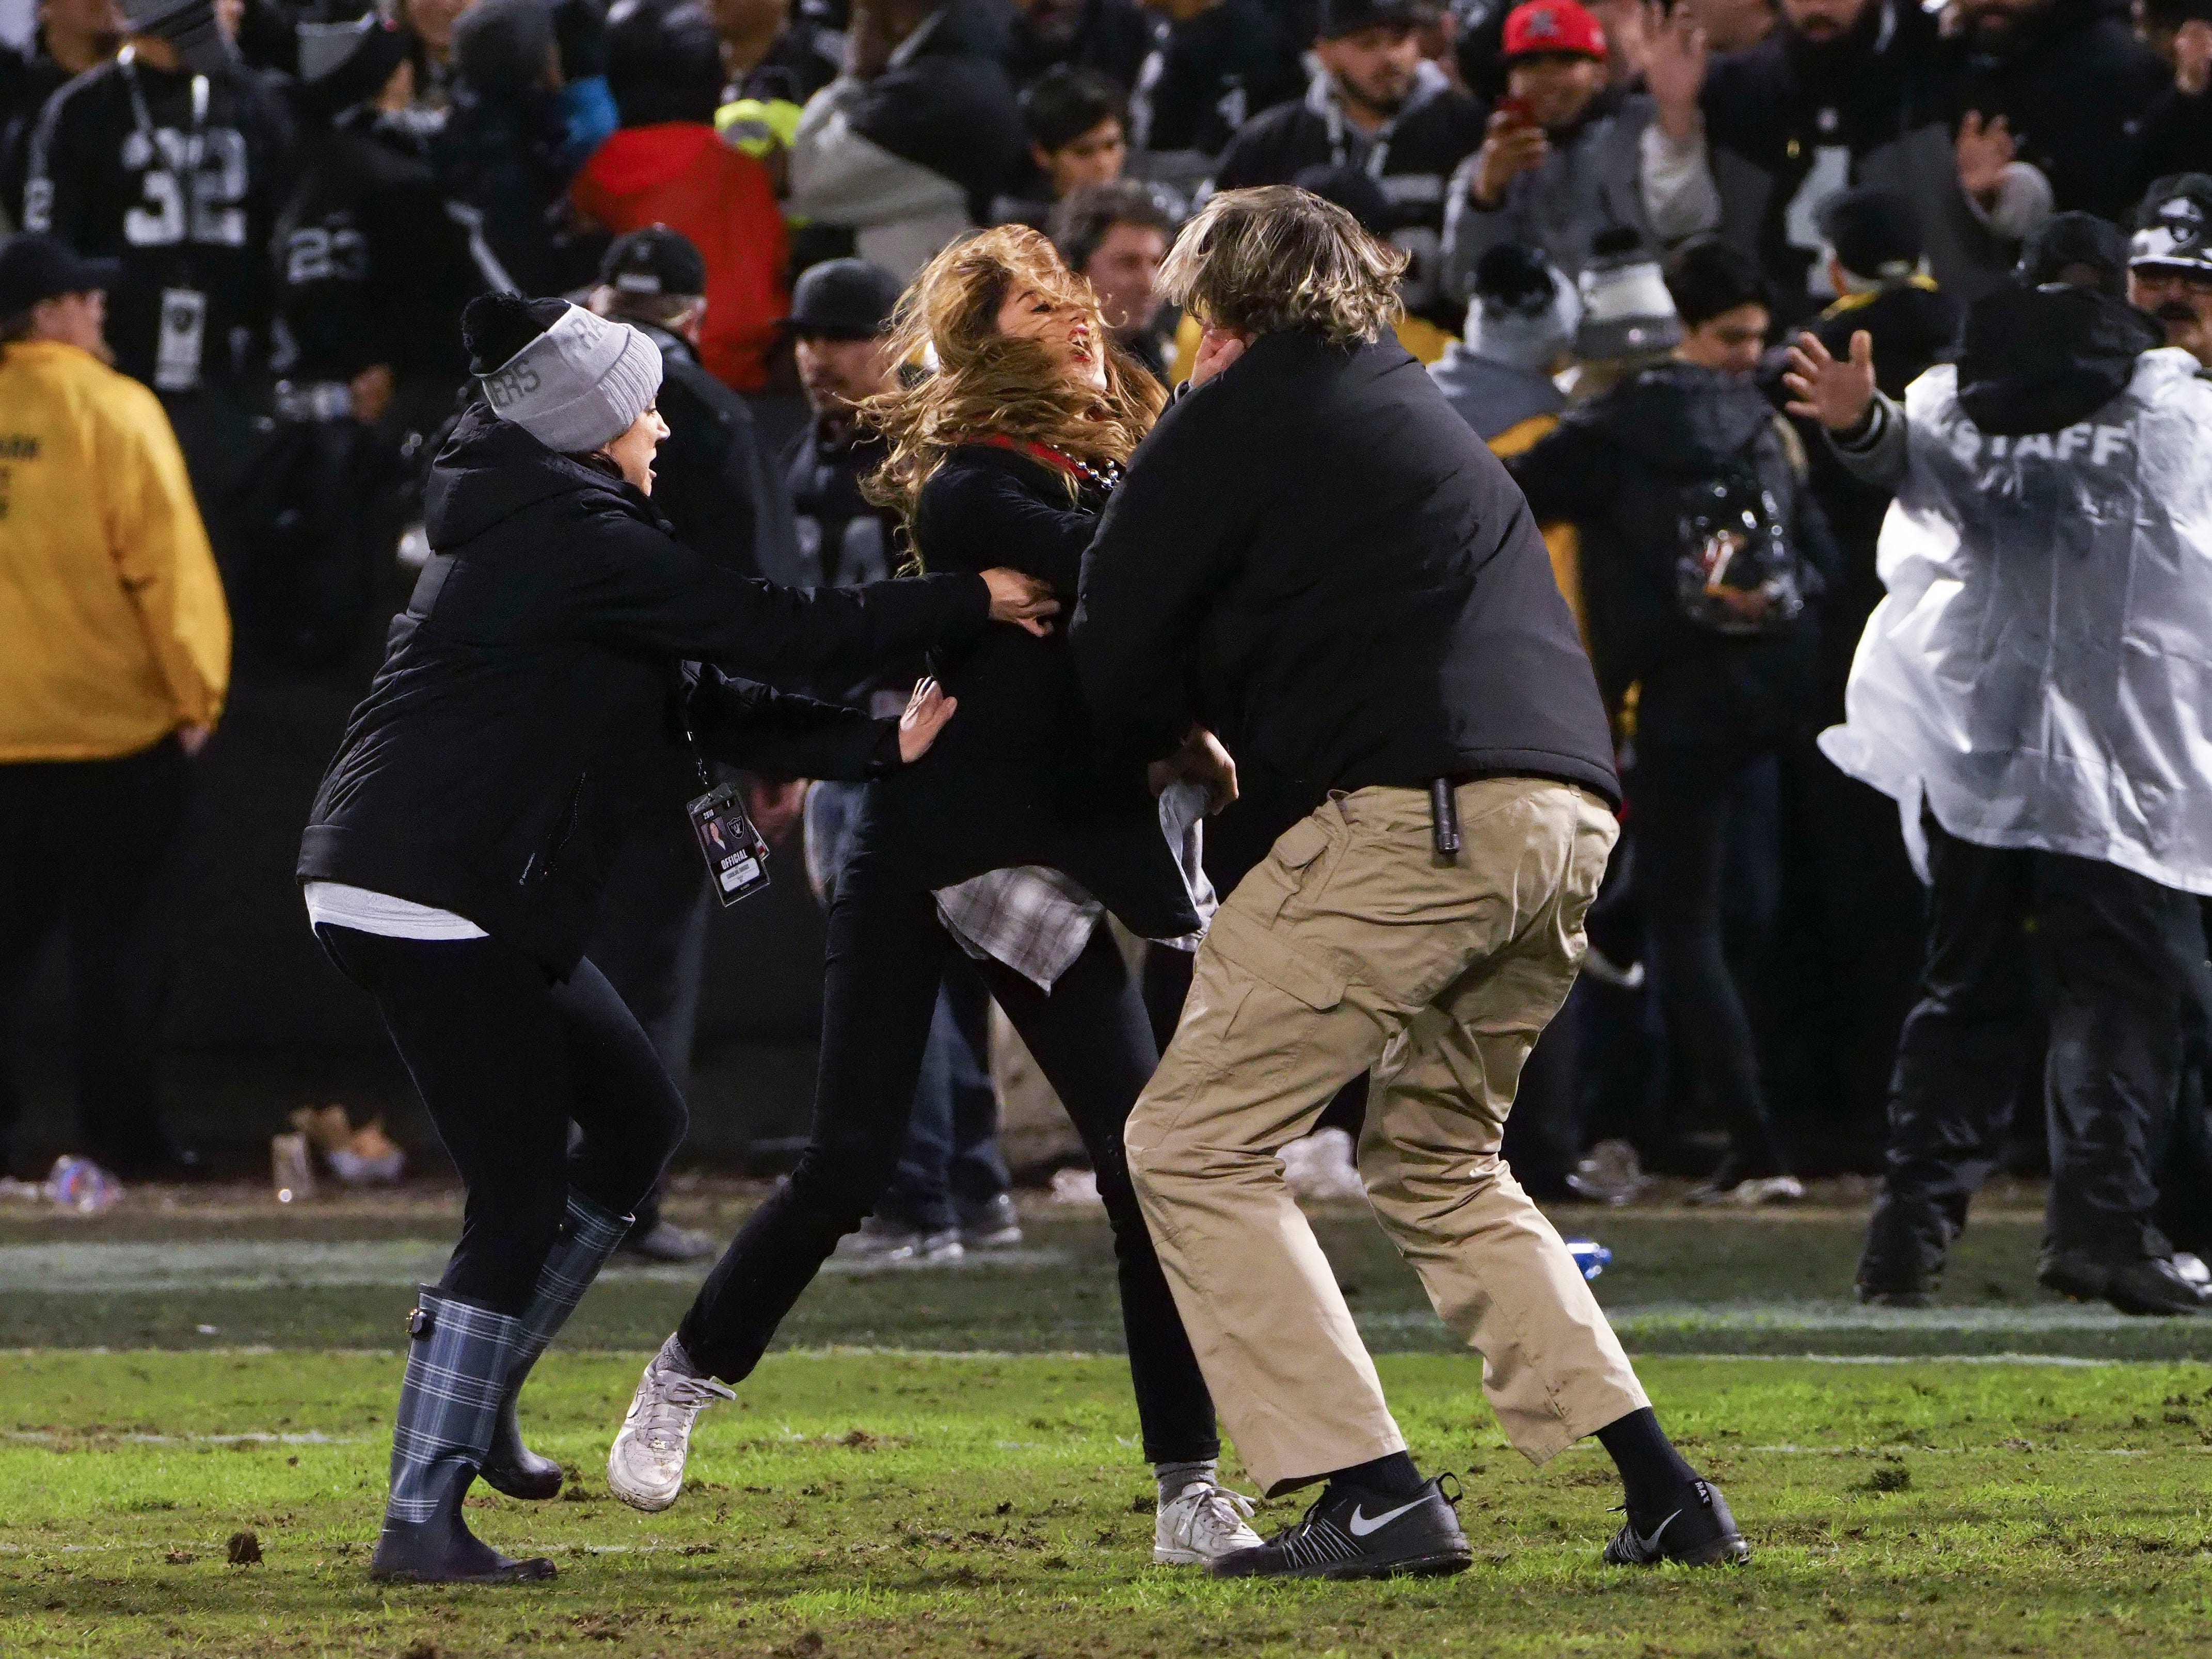 Security personnel try to control a fan who rushed the field after the game between the Oakland Raiders and the Denver Broncos at Oakland Coliseum.